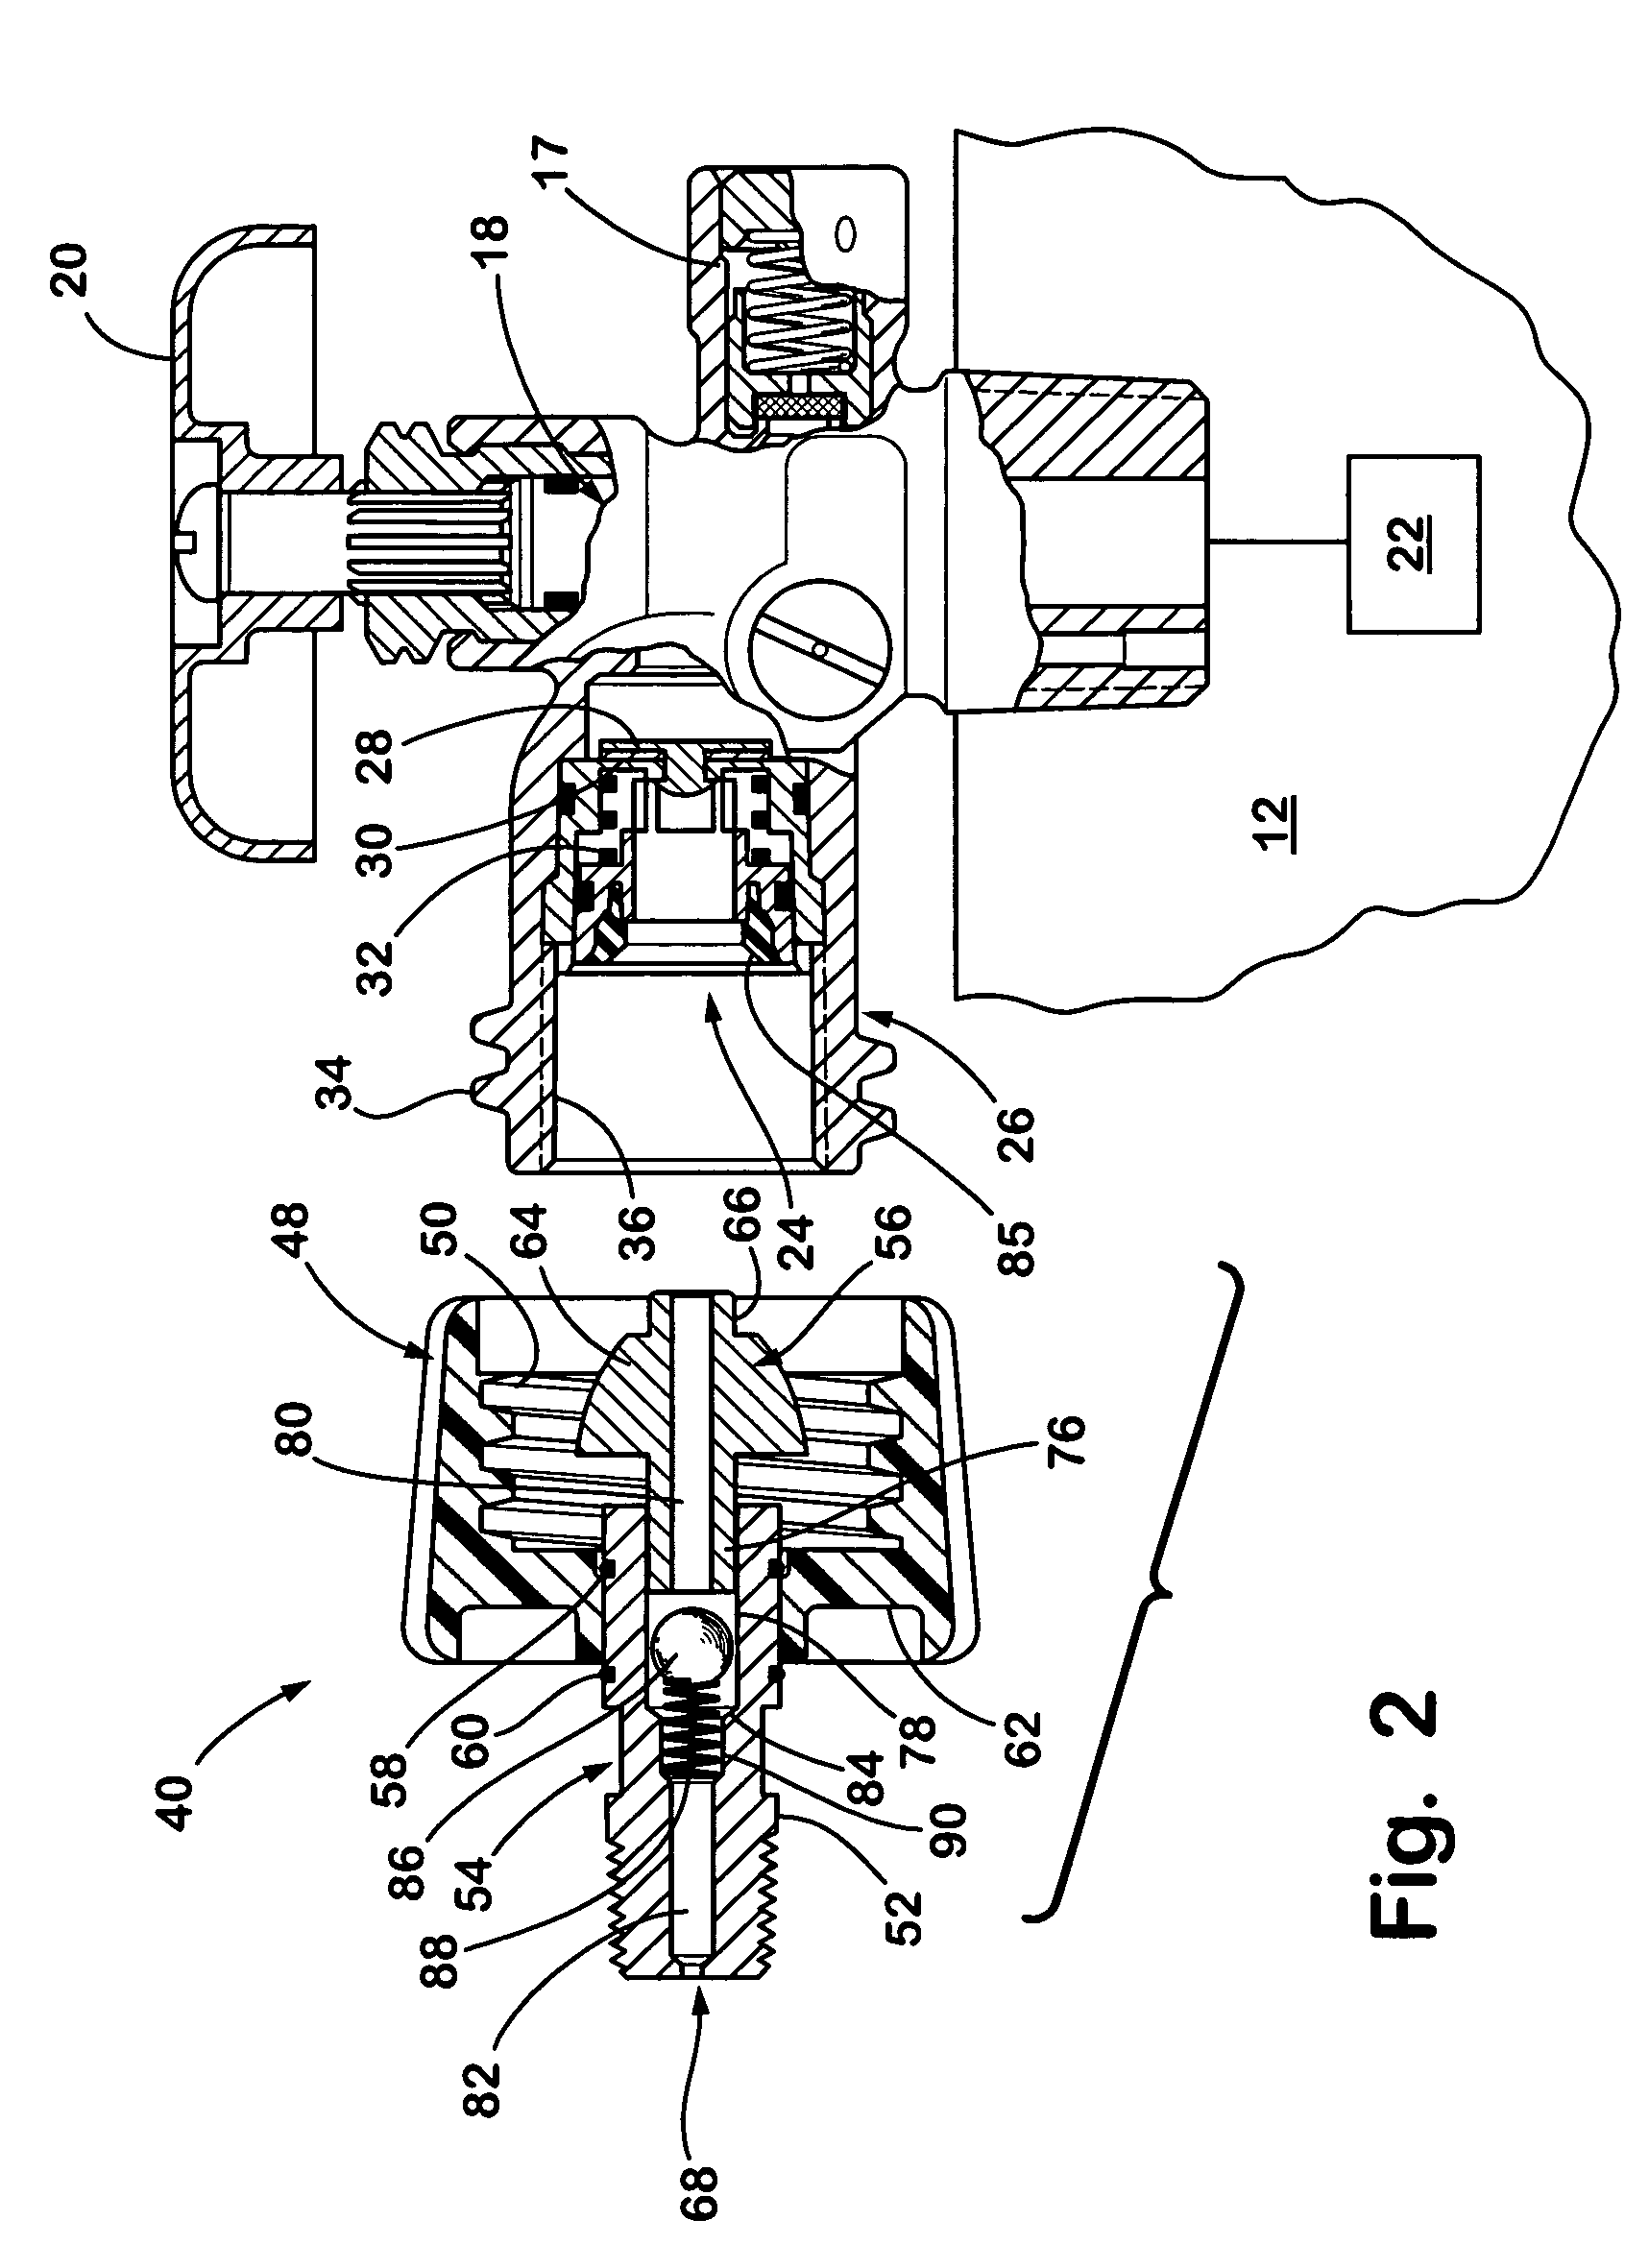 patent us6895952 - appliance end fitting